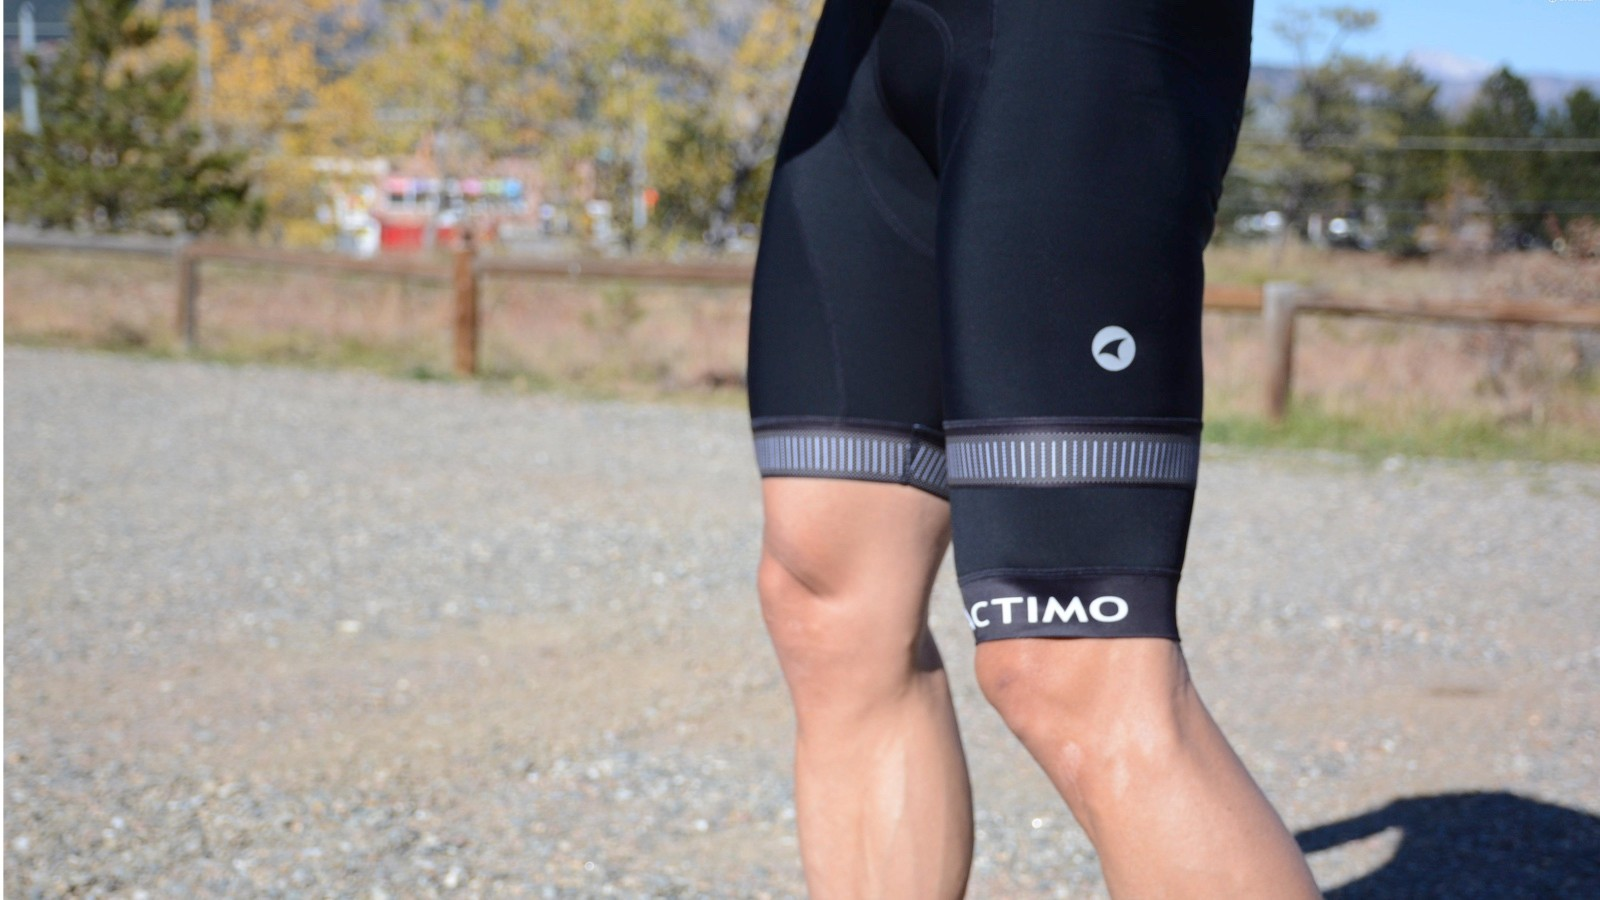 Talk about a 'tweener product — the Thigh Warmer is for conditions when it's too cold for bare legs but not cold enough to warrant knee or leg warmers